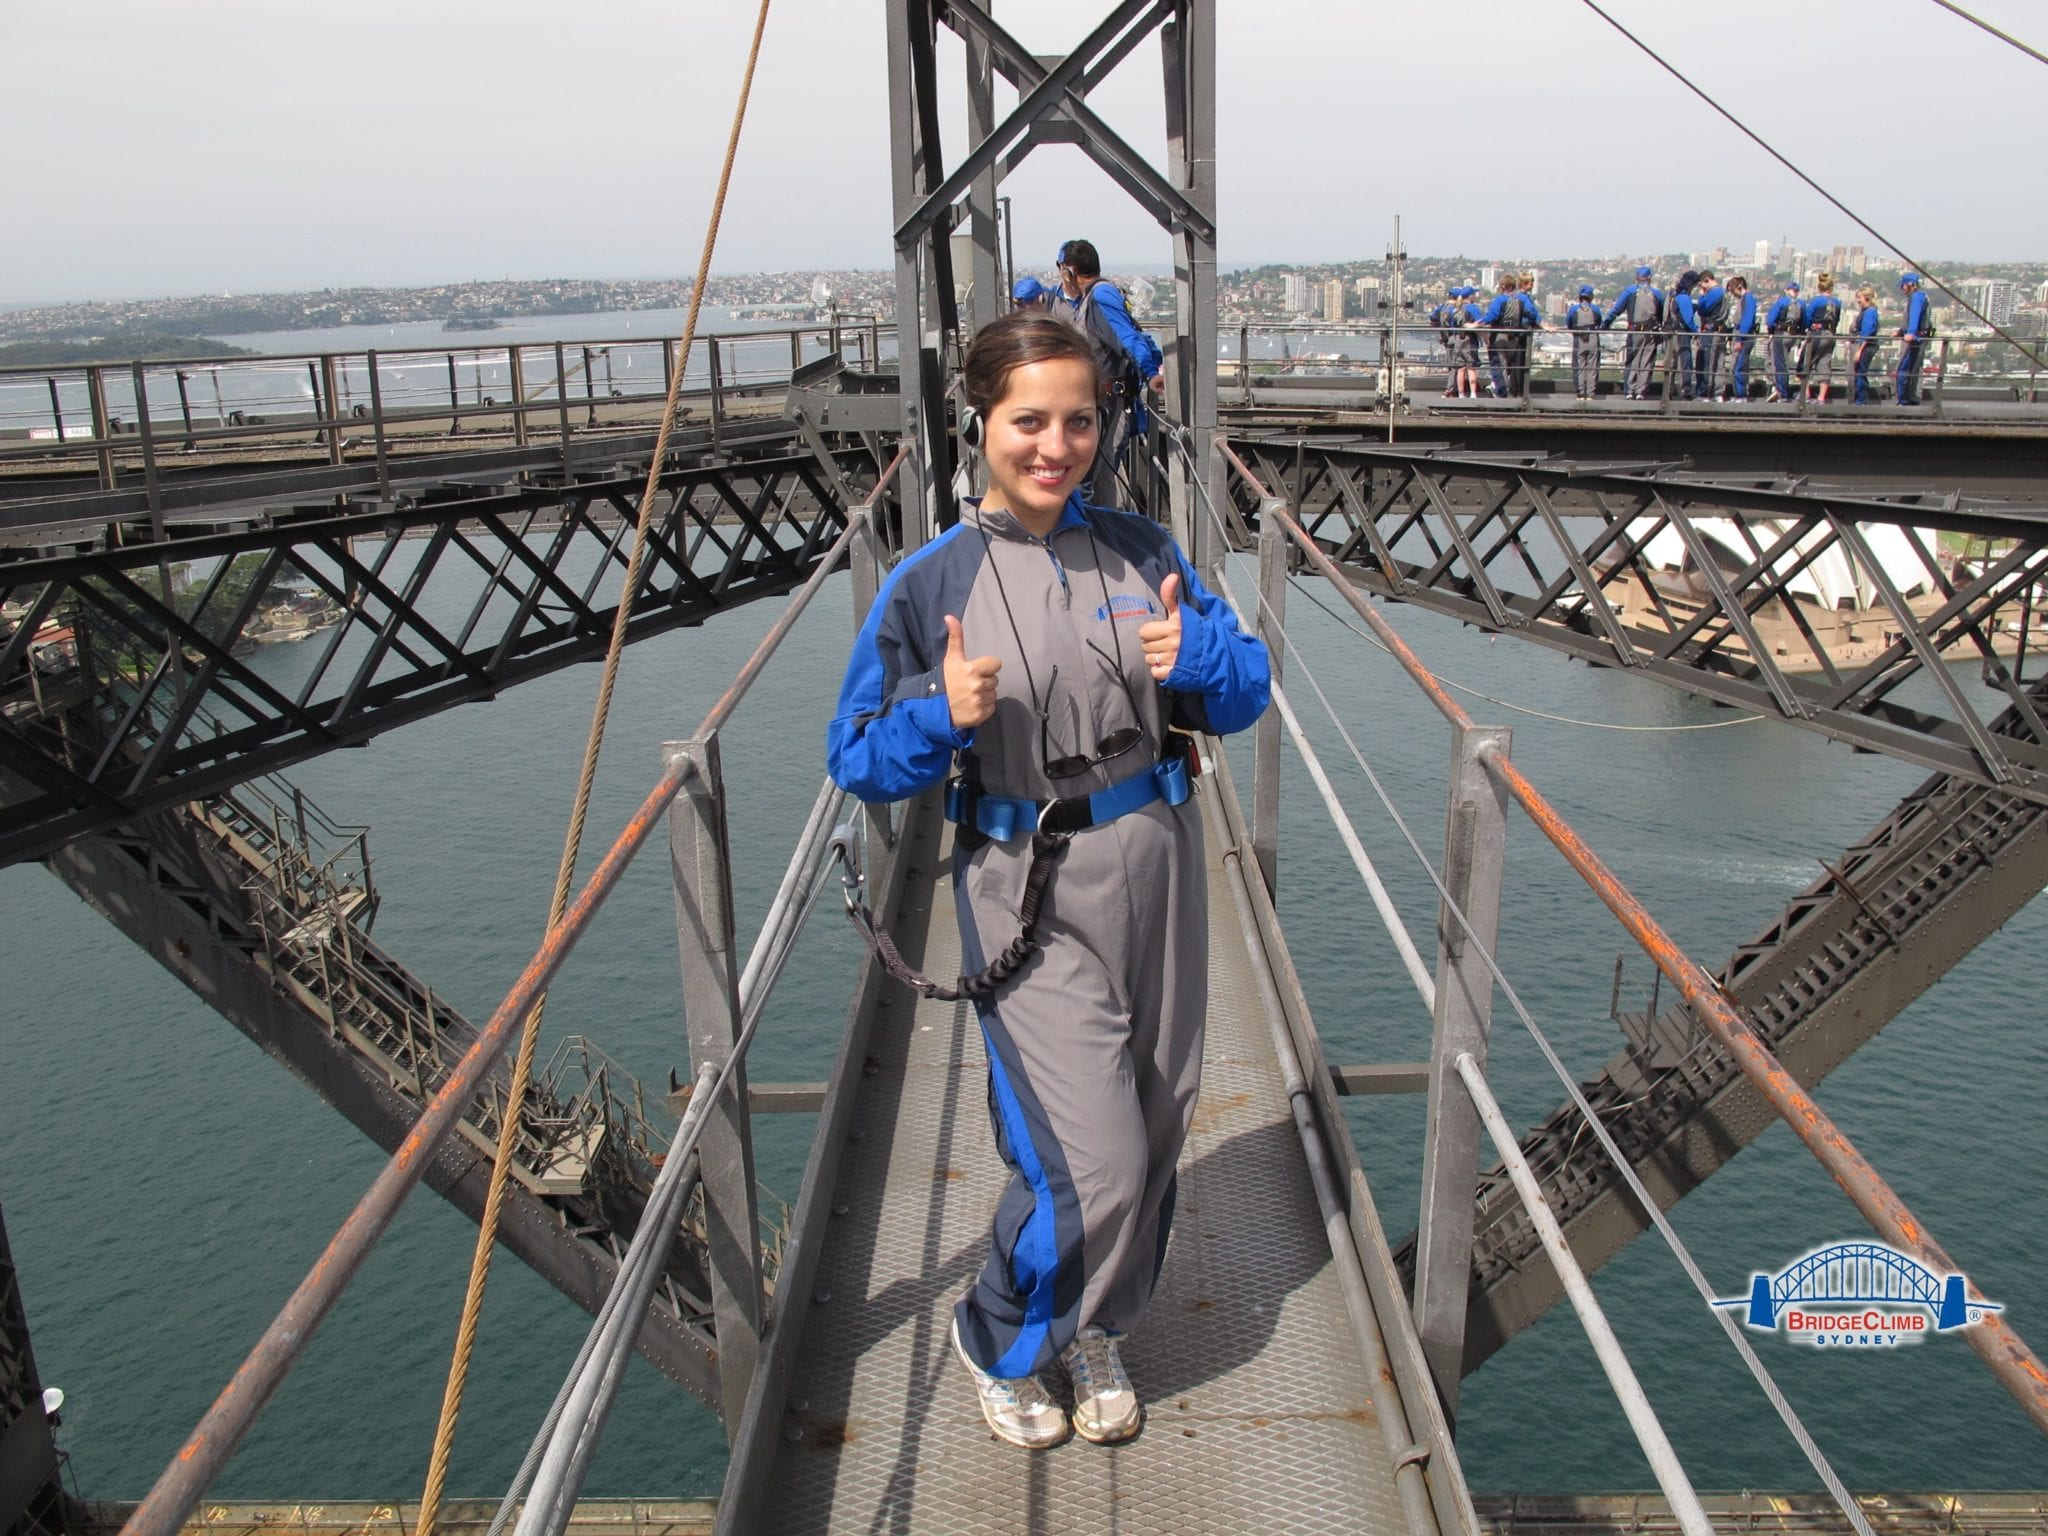 Adventurous Kate on the Bridgeclimb